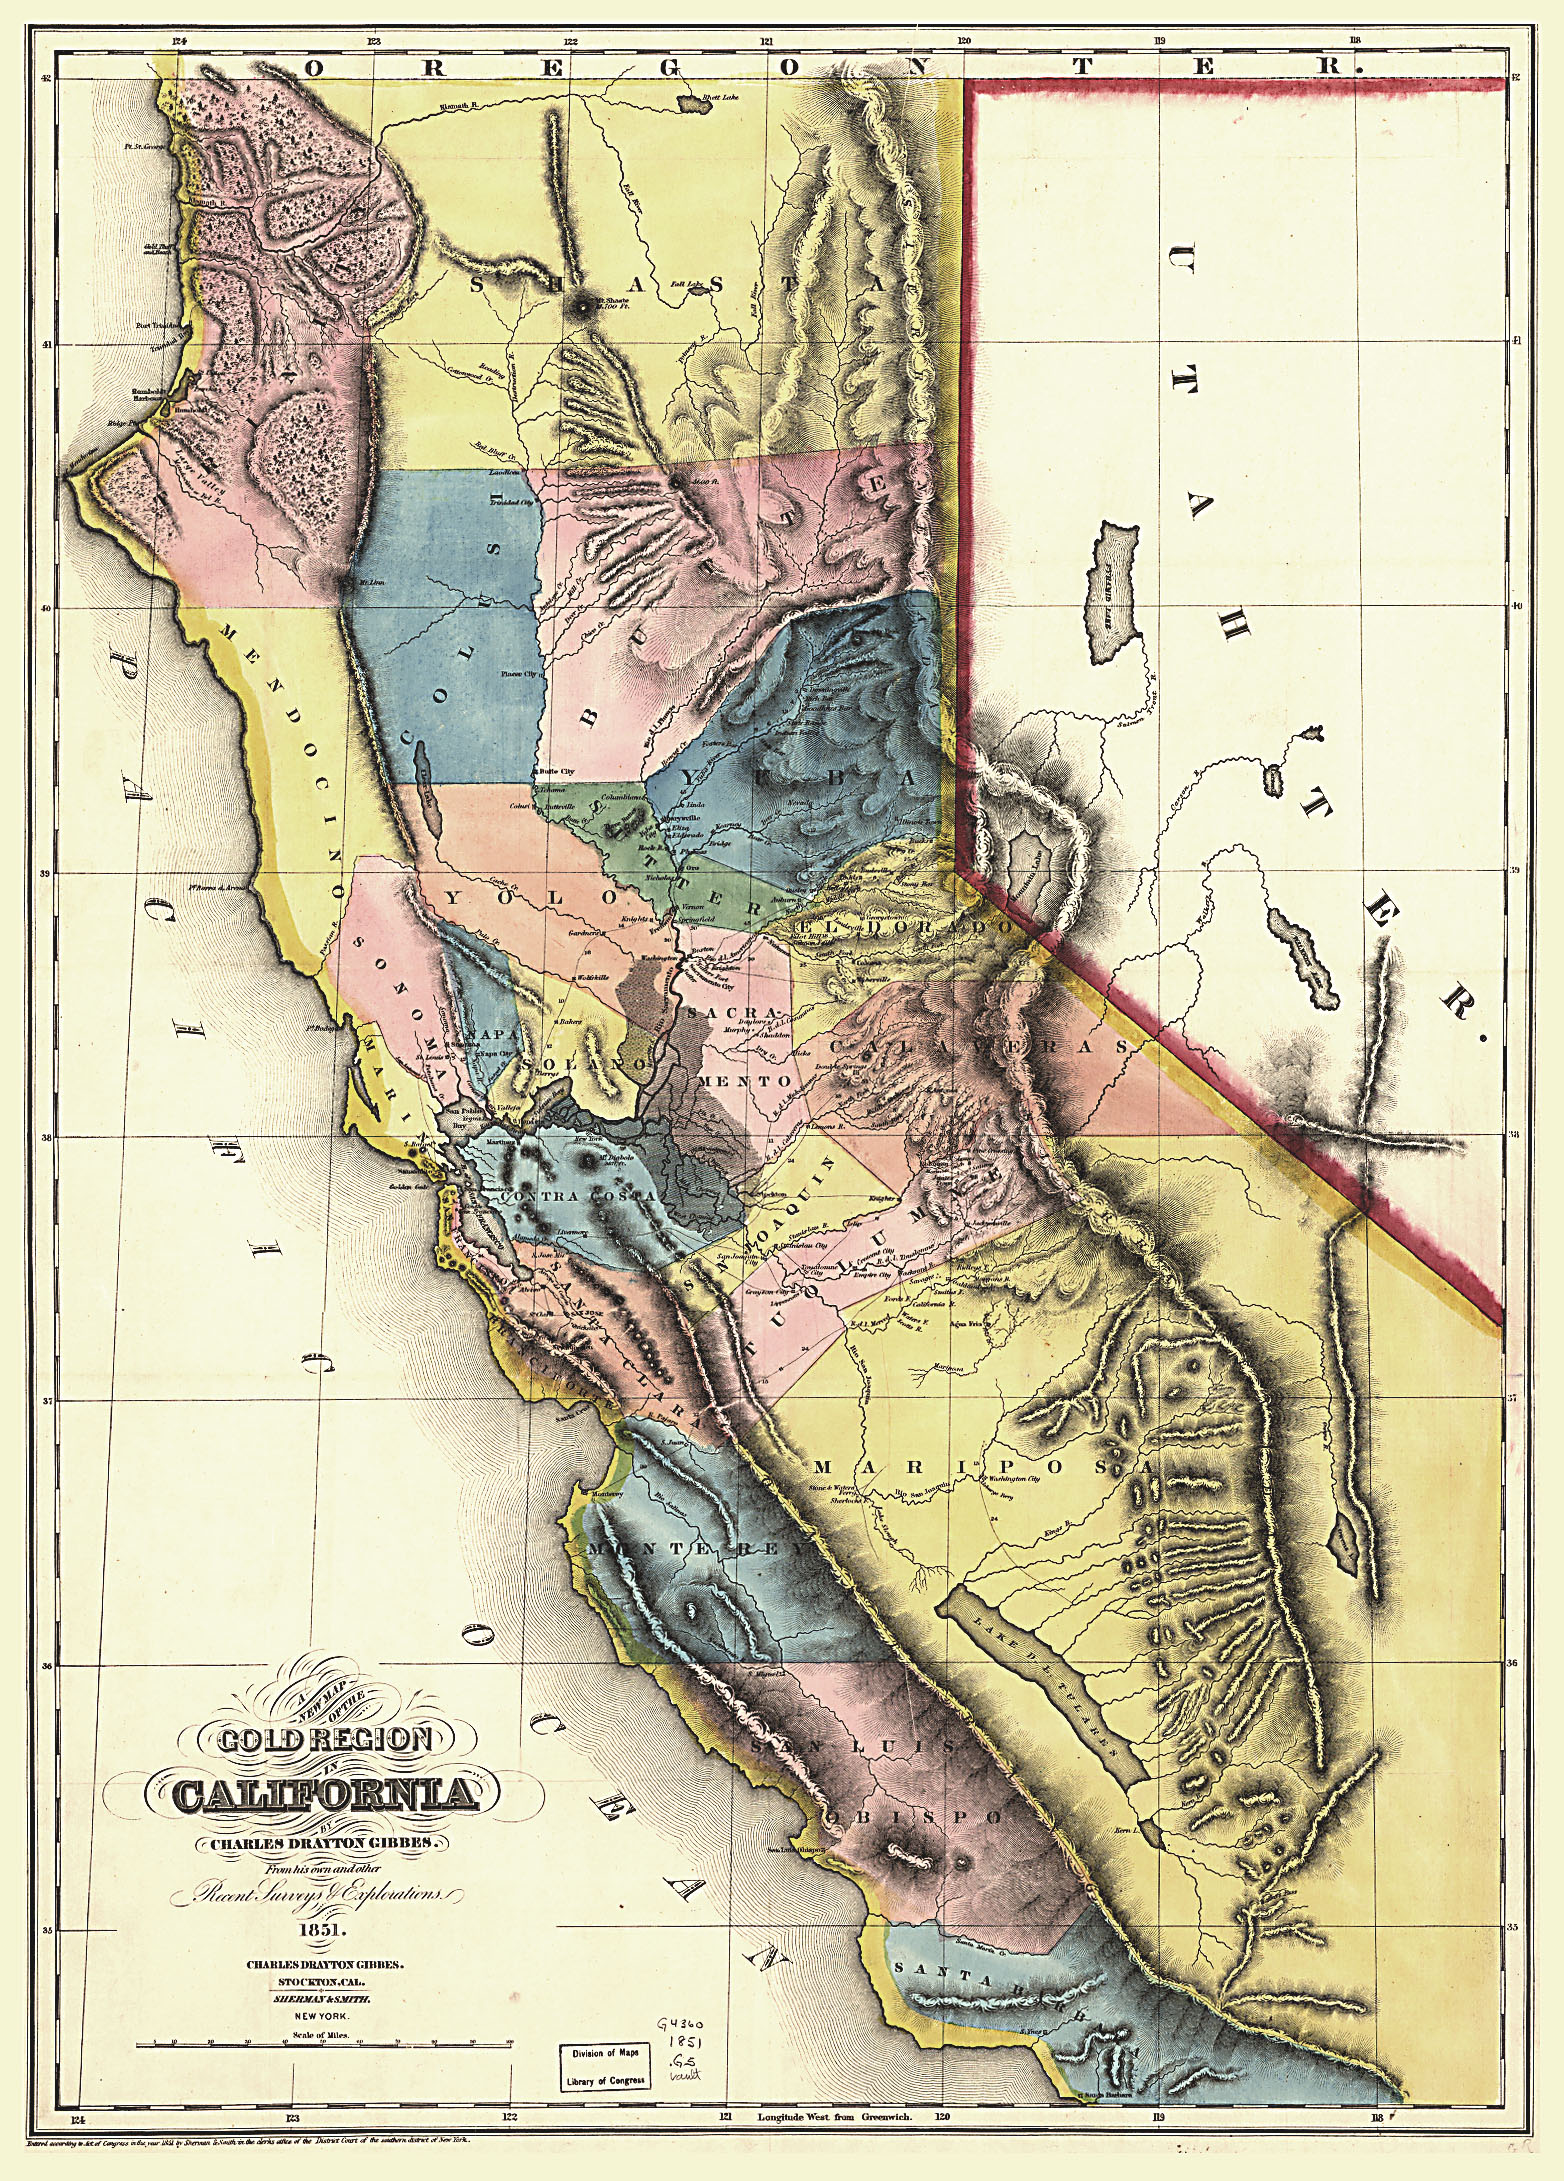 California Digital Map Liry. United States Digital Map ... on petaluma ca map, anchor bay ca map, ca central map, counties in ca map, ca map with cities, ca agriculture map, socal cities map, ca msa map, ca congressional district map, ca zip map, sunol ca map, co ca map, ca metro map, newman ca map, north bay area ca map, mcfarland ca map, napa ca map, ca regional map, ca world map, ca city map,